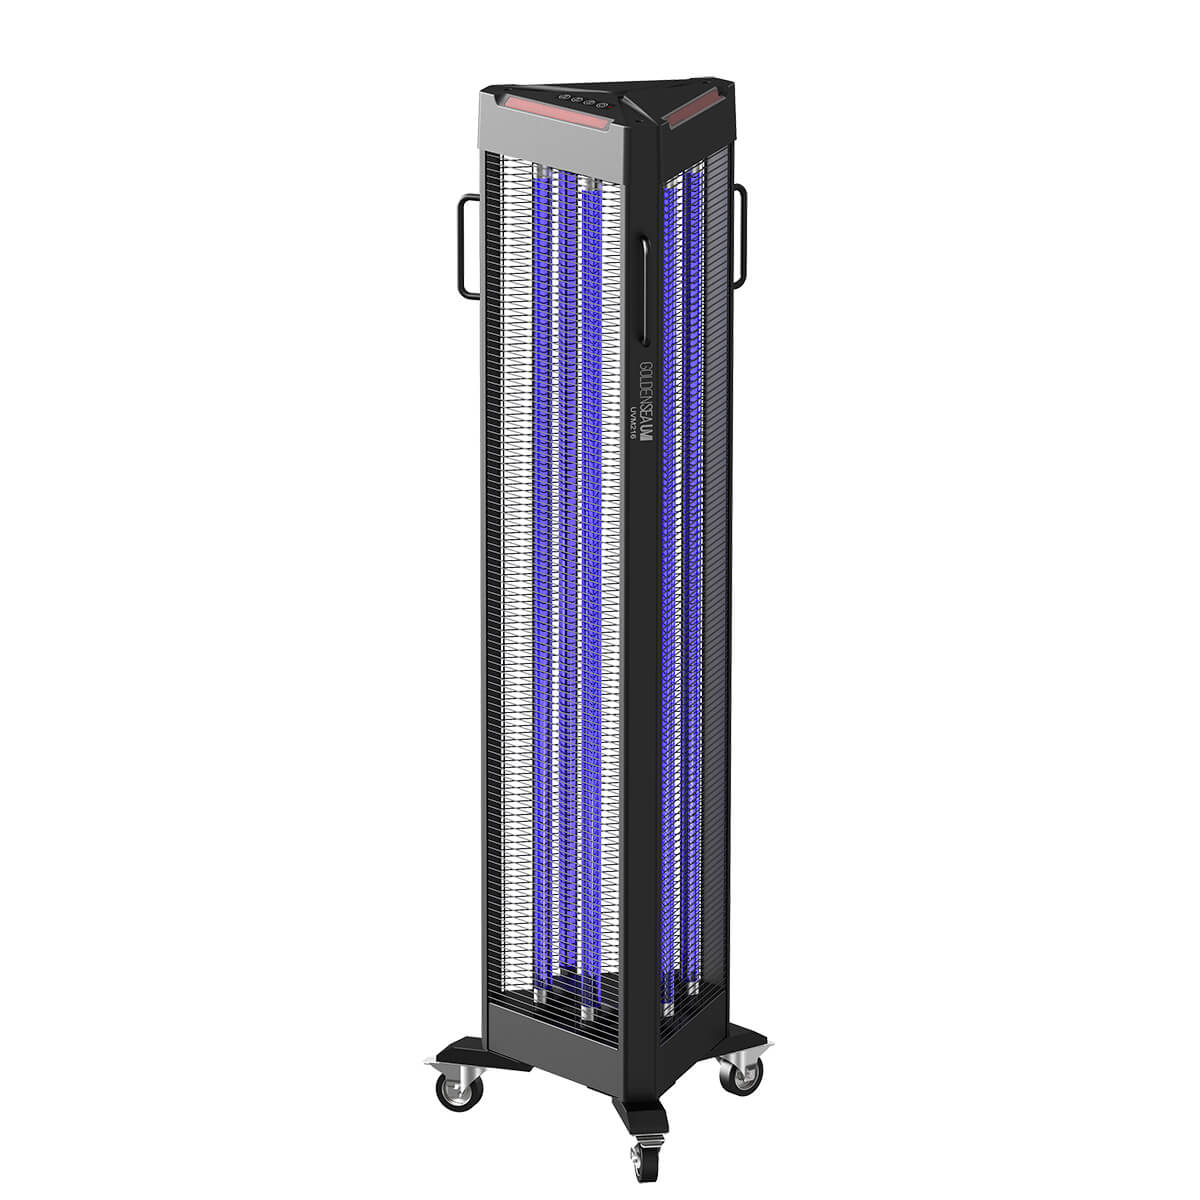 ultraviolet disinfection lamp, portable, safety,protection, covid-19, skyline entourage